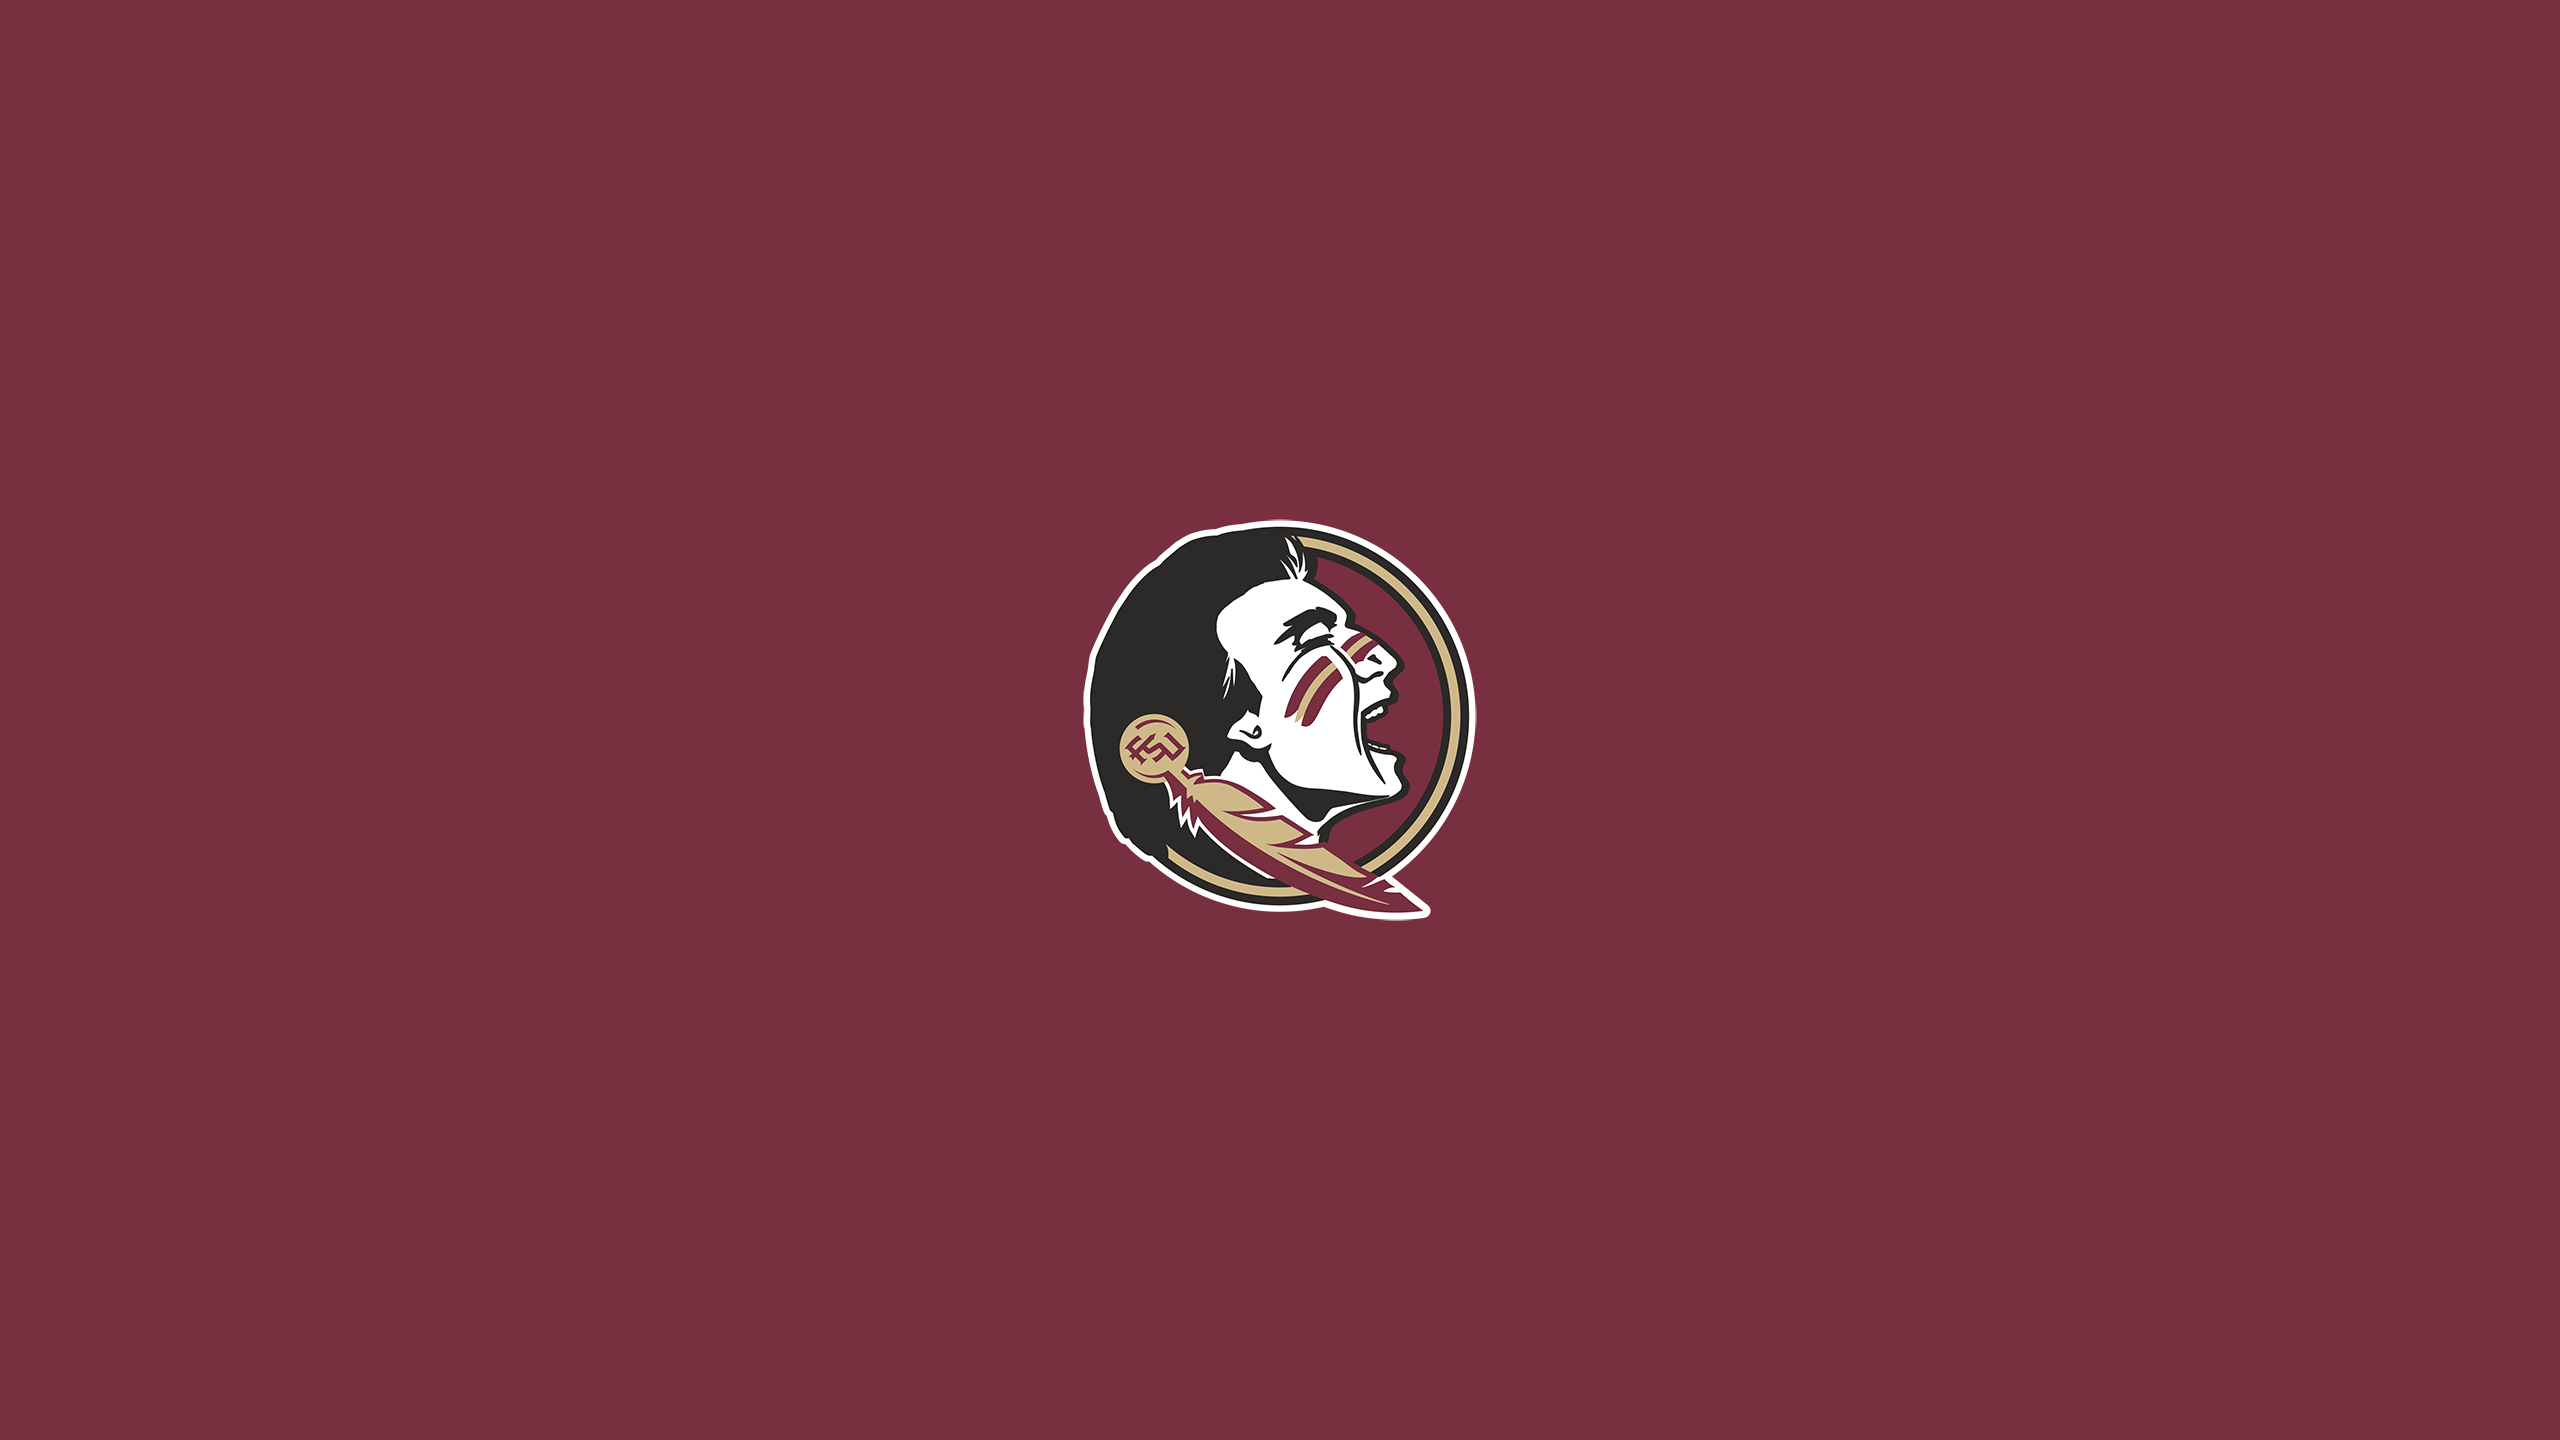 Florida St. University Seminoles